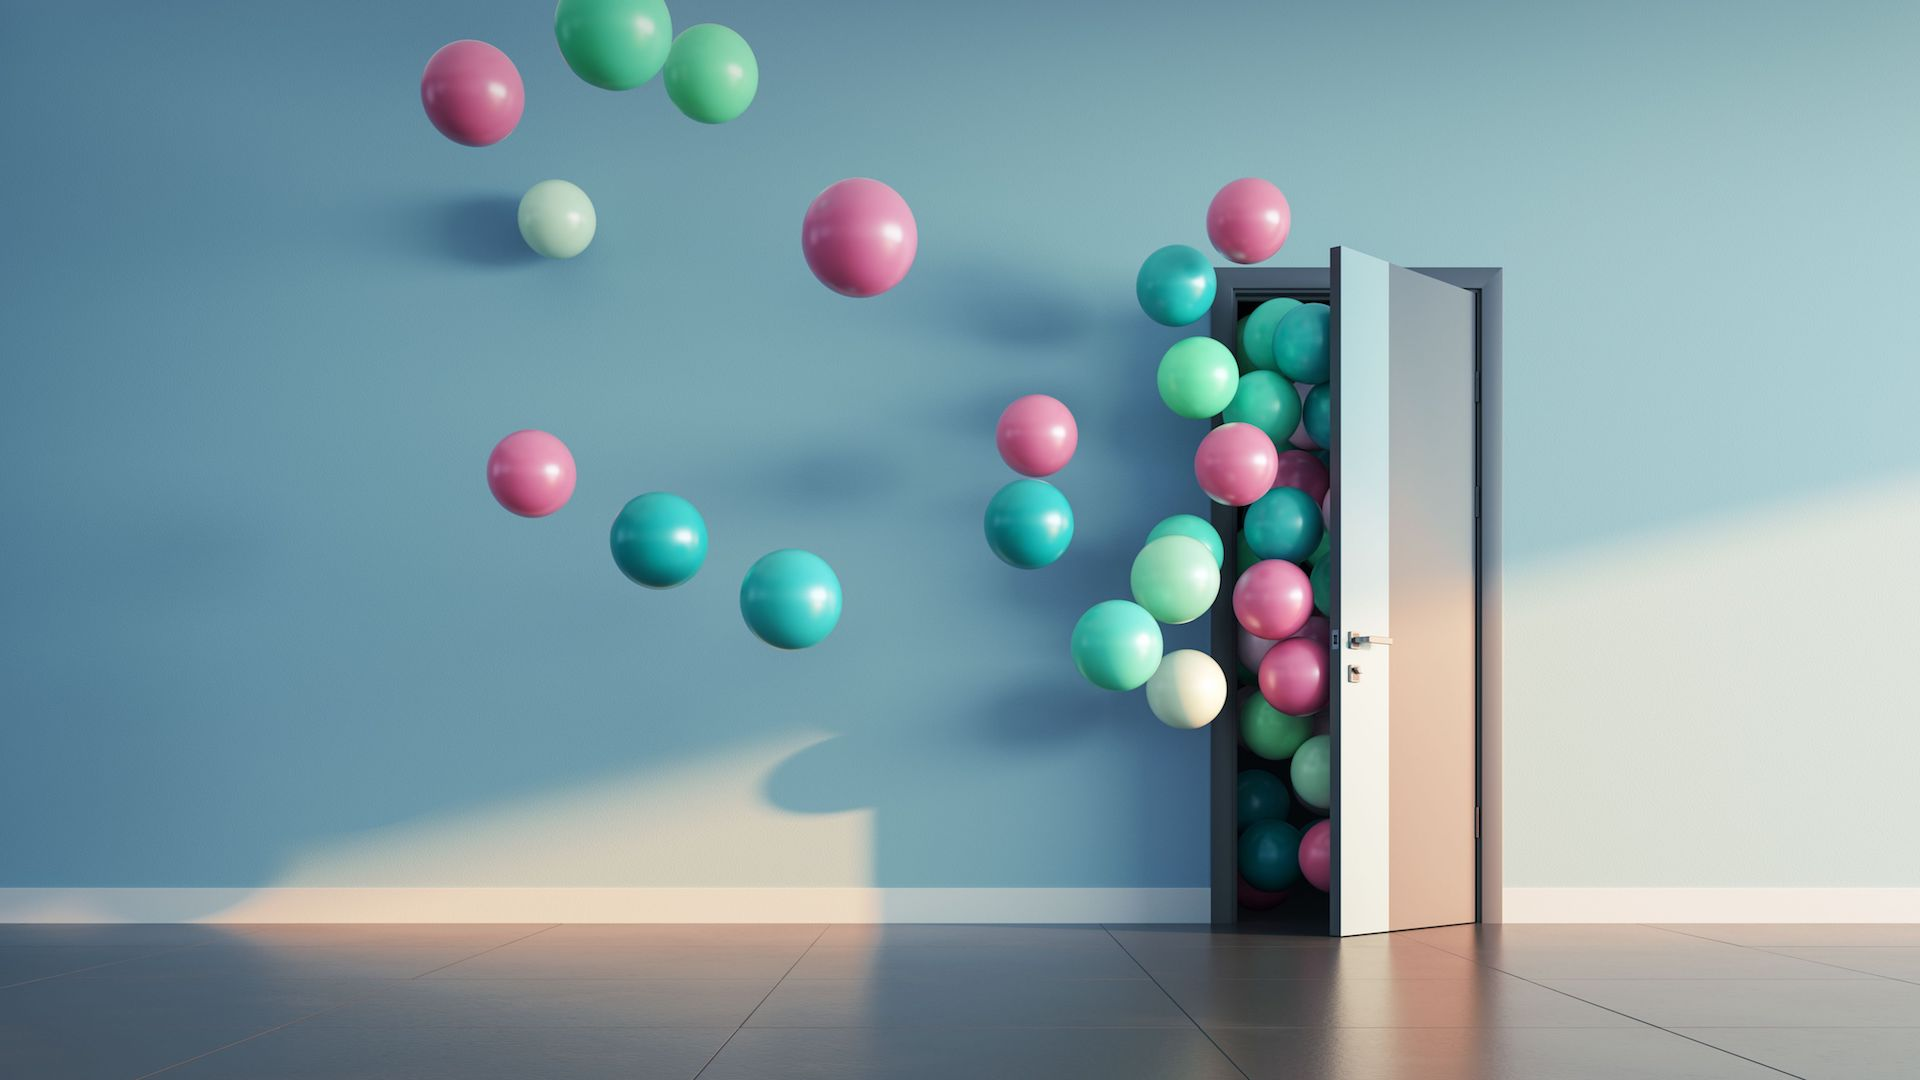 image-of-colorful-baloons-flowing-out-of-open-door